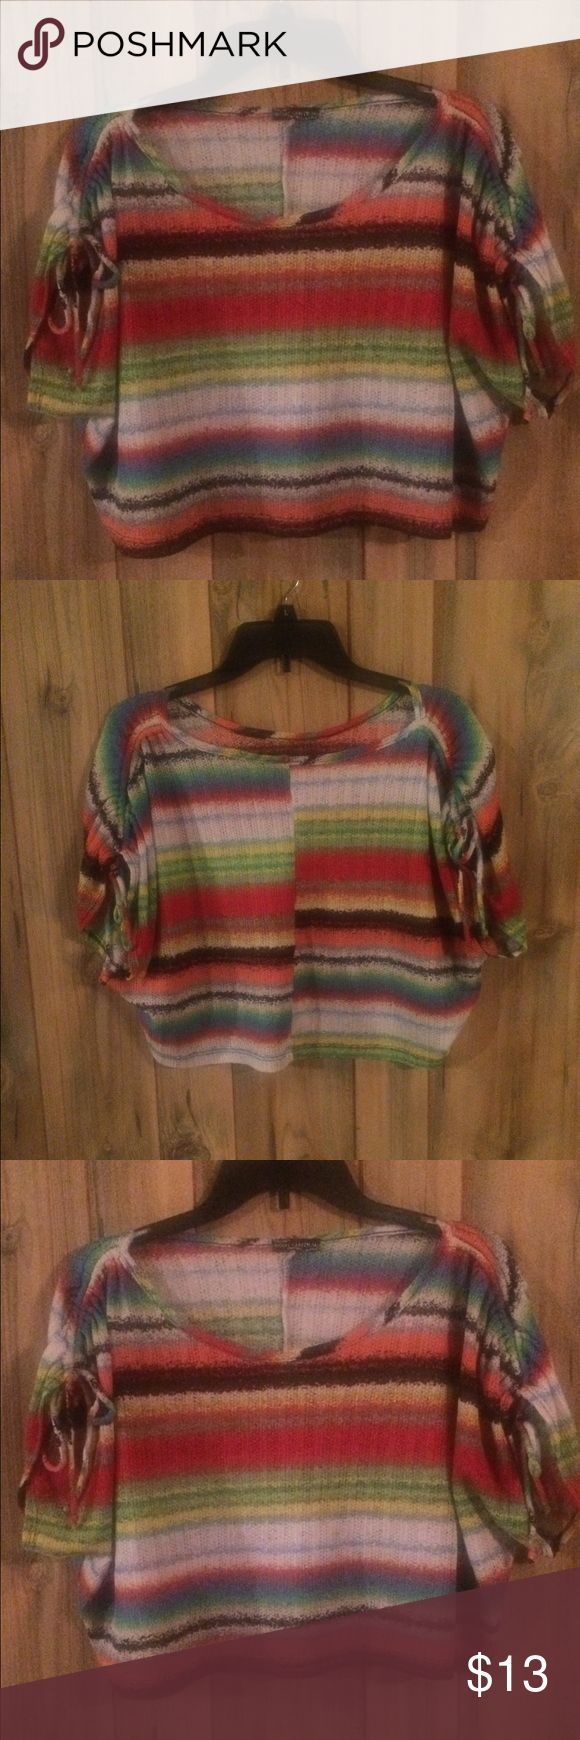 Women's multi color crop top This bright & vibrant crop top great for layering Body Central Tops Crop Tops